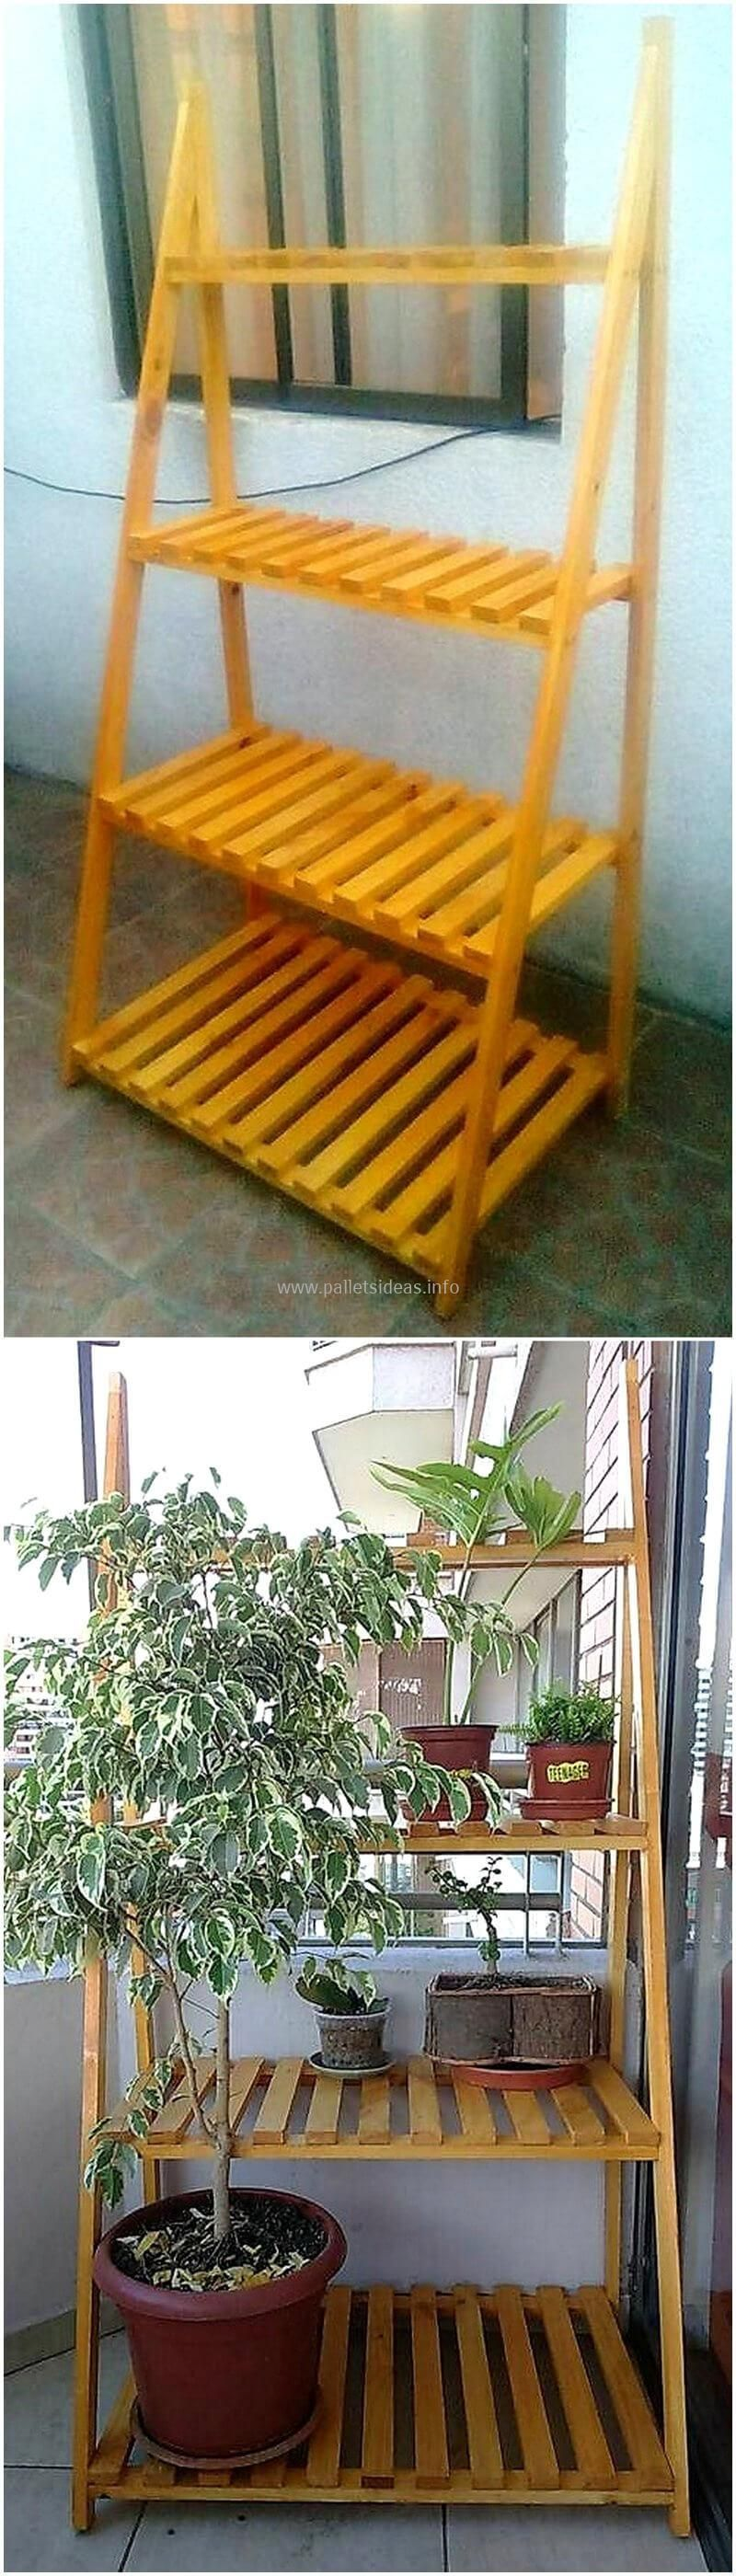 Awesome Pallet Ideas You Can Do IT Yourself at Home ...